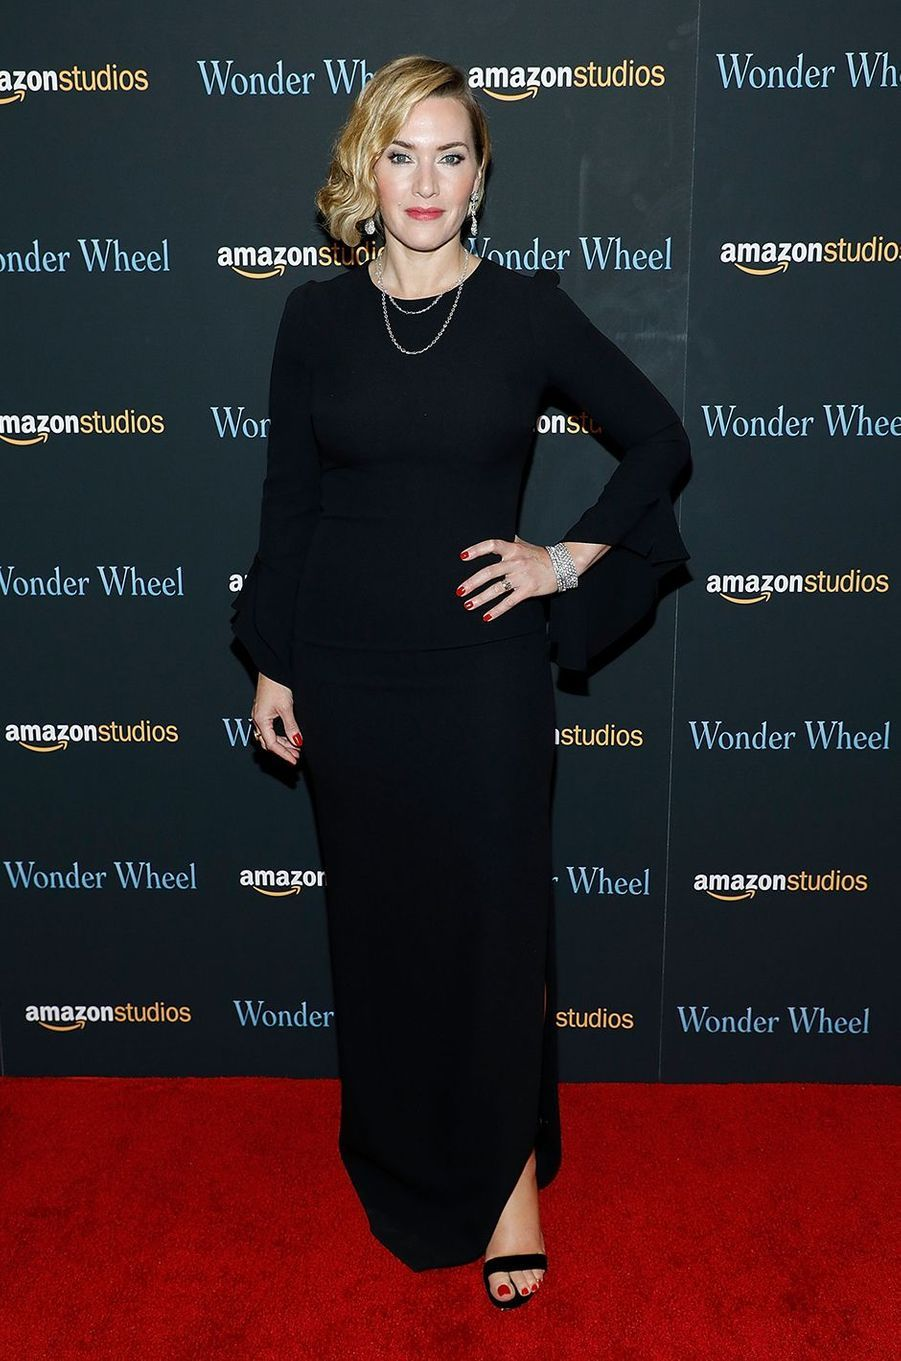 Kate Winslet à l'avant-première du film «Wonder Wheel» à New York en novembre 2017